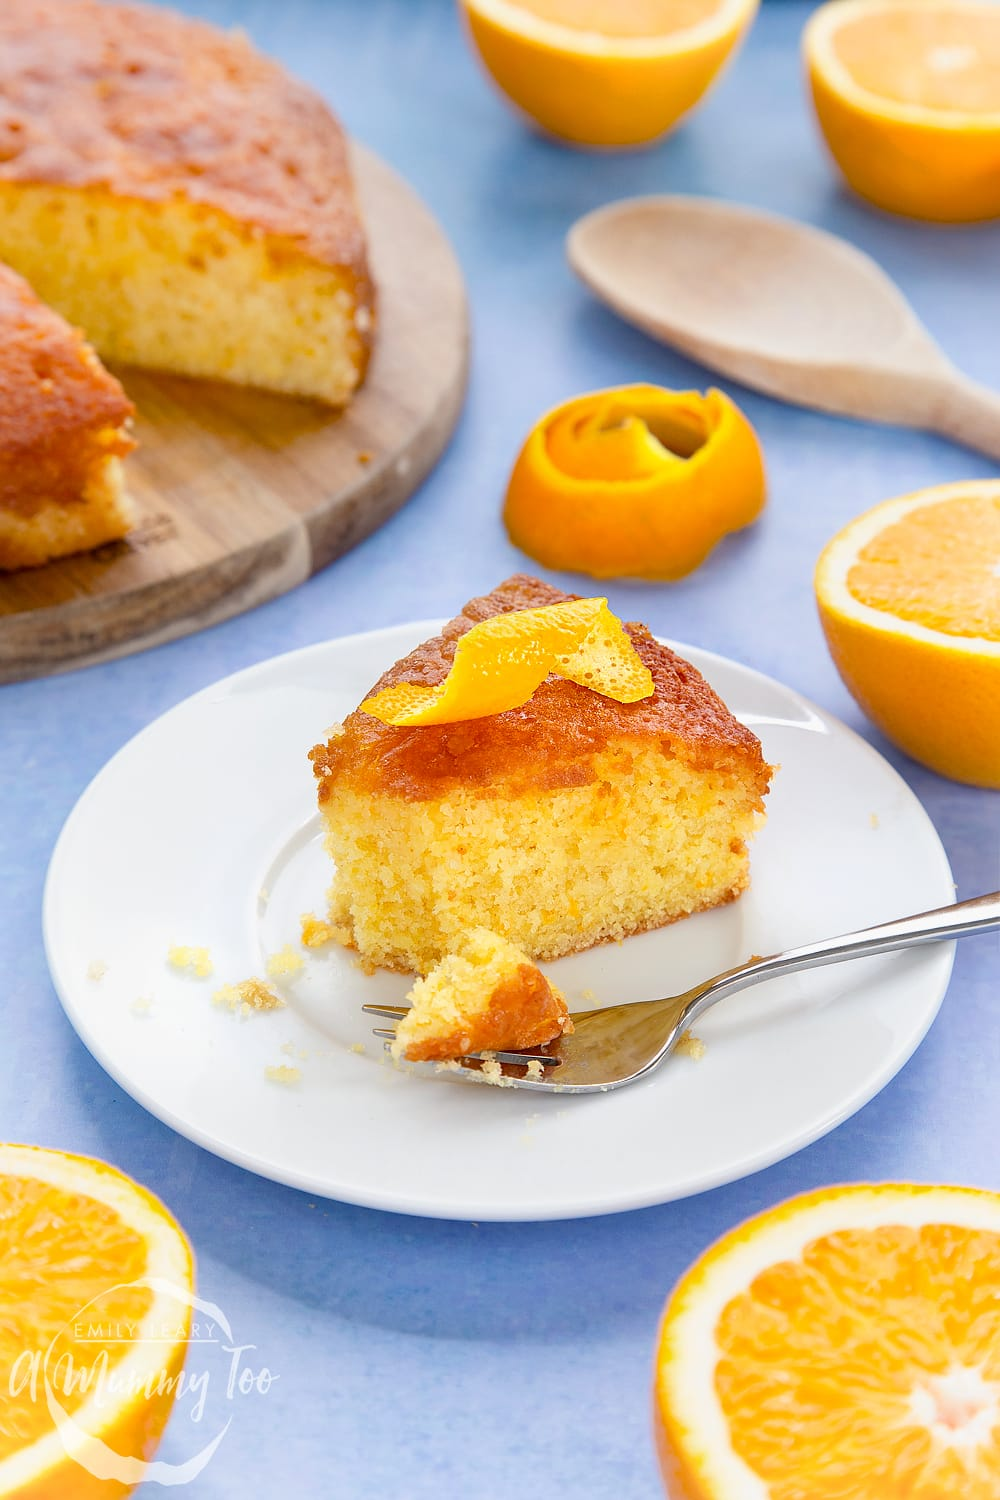 A slice of orange drizzle cake served on a small white plate. A curl of orange peel sits on top of the cake. A cake fork rests on the plate with crumbs on it.